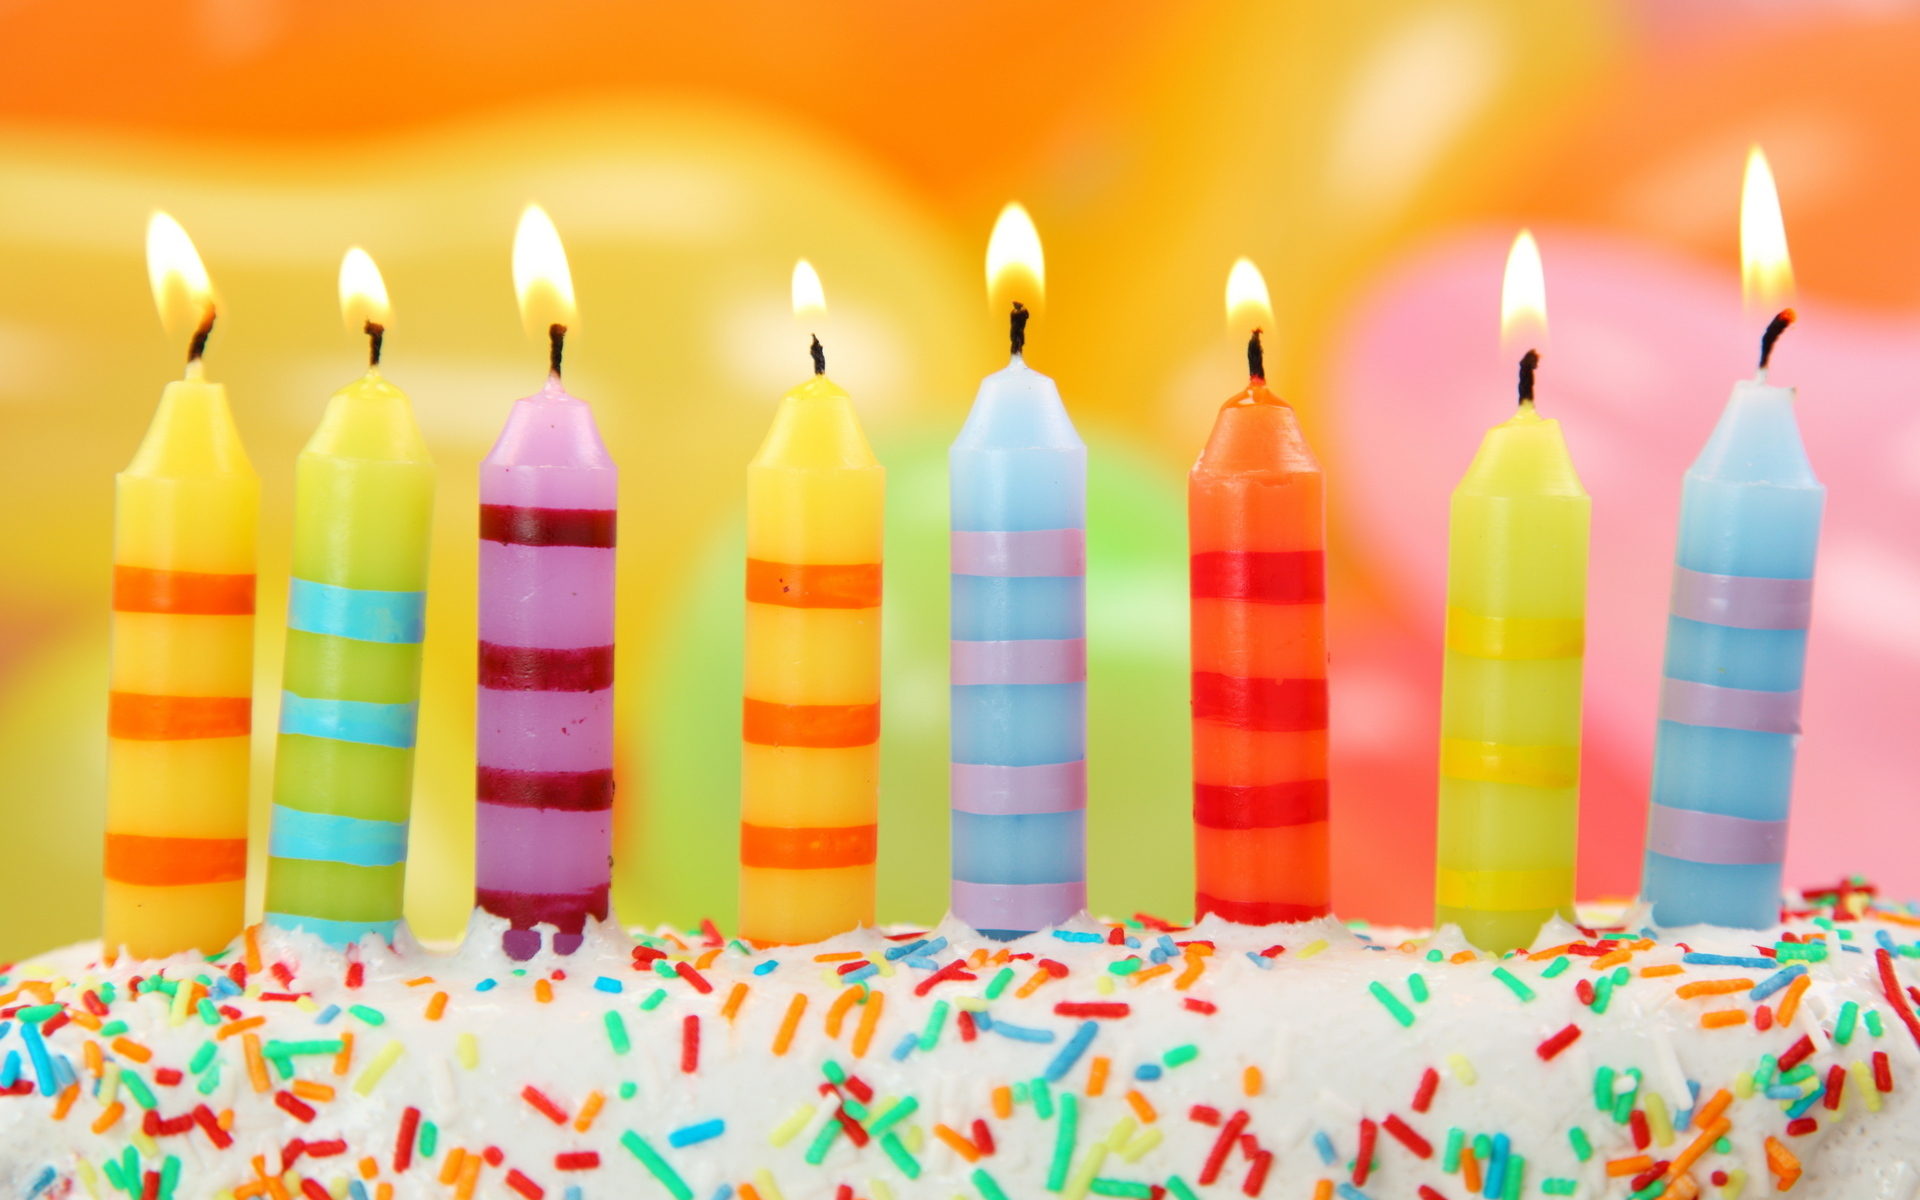 Free Download Download Happy Birthday Wallpaper Hd Pictures In